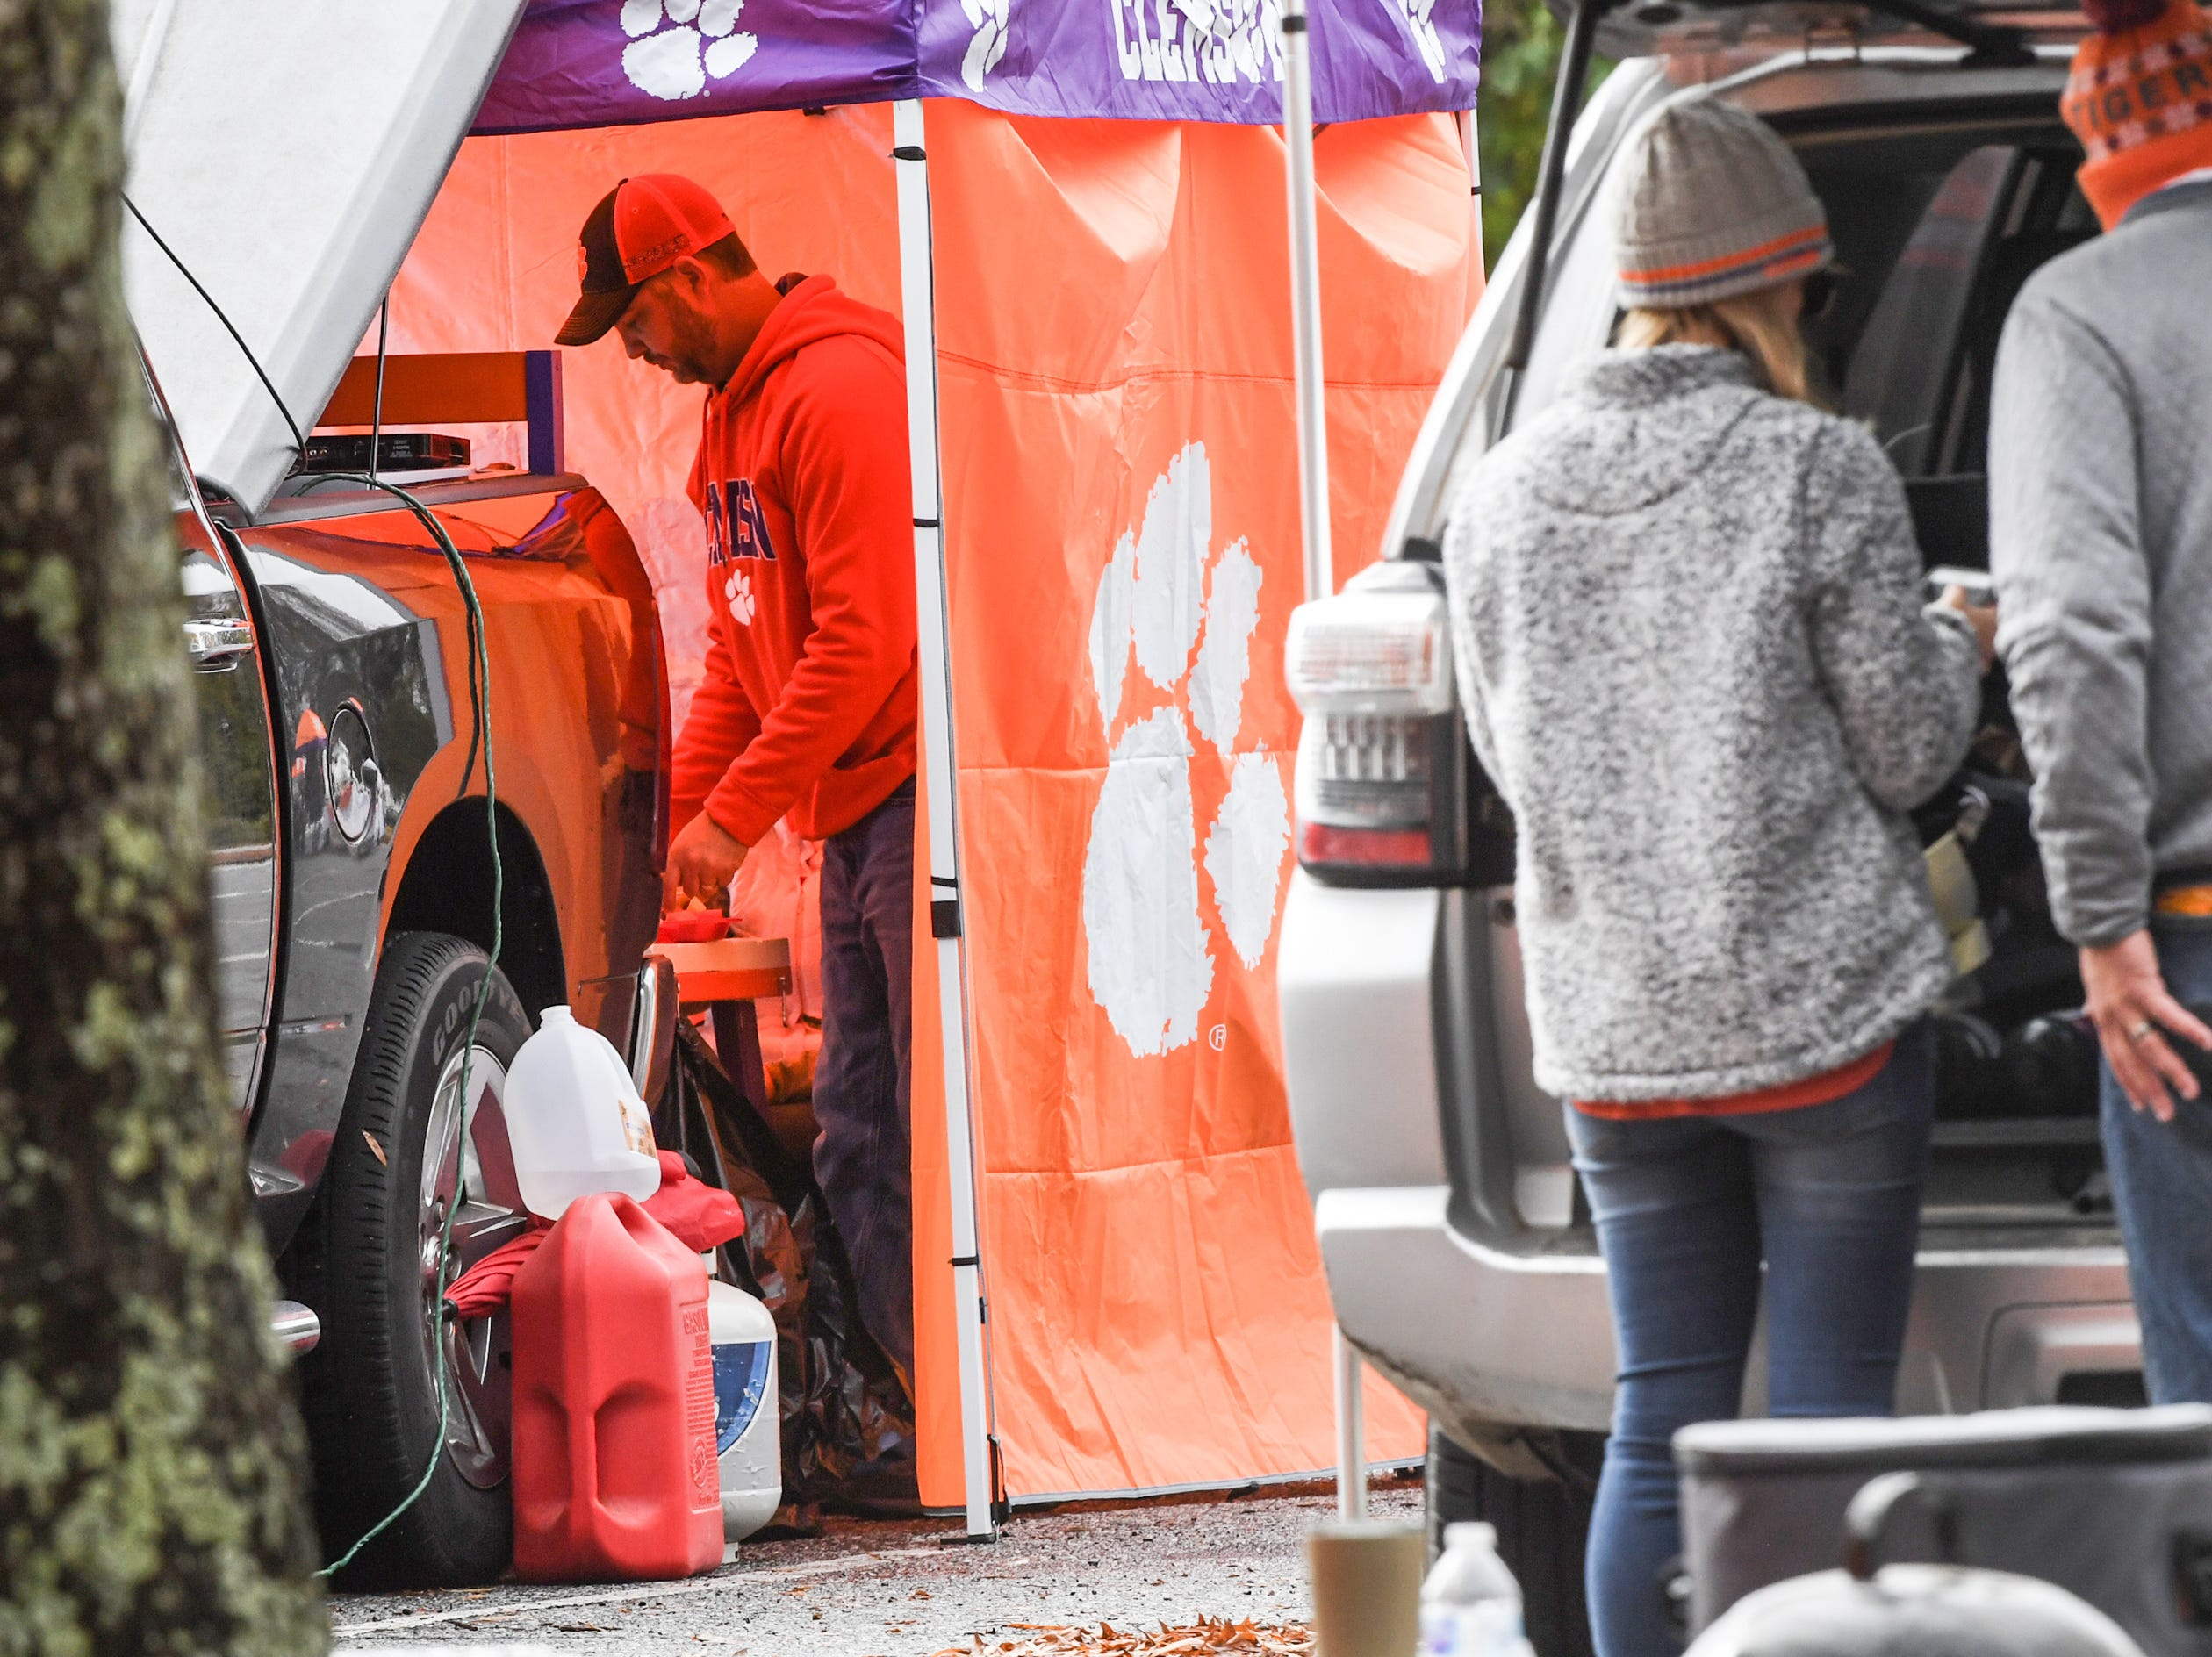 Fans tailgate in a covered area out of the cold, hours before kickoff before the South Carolina at Clemson football game in Clemson on Saturday, November 24, 2018.